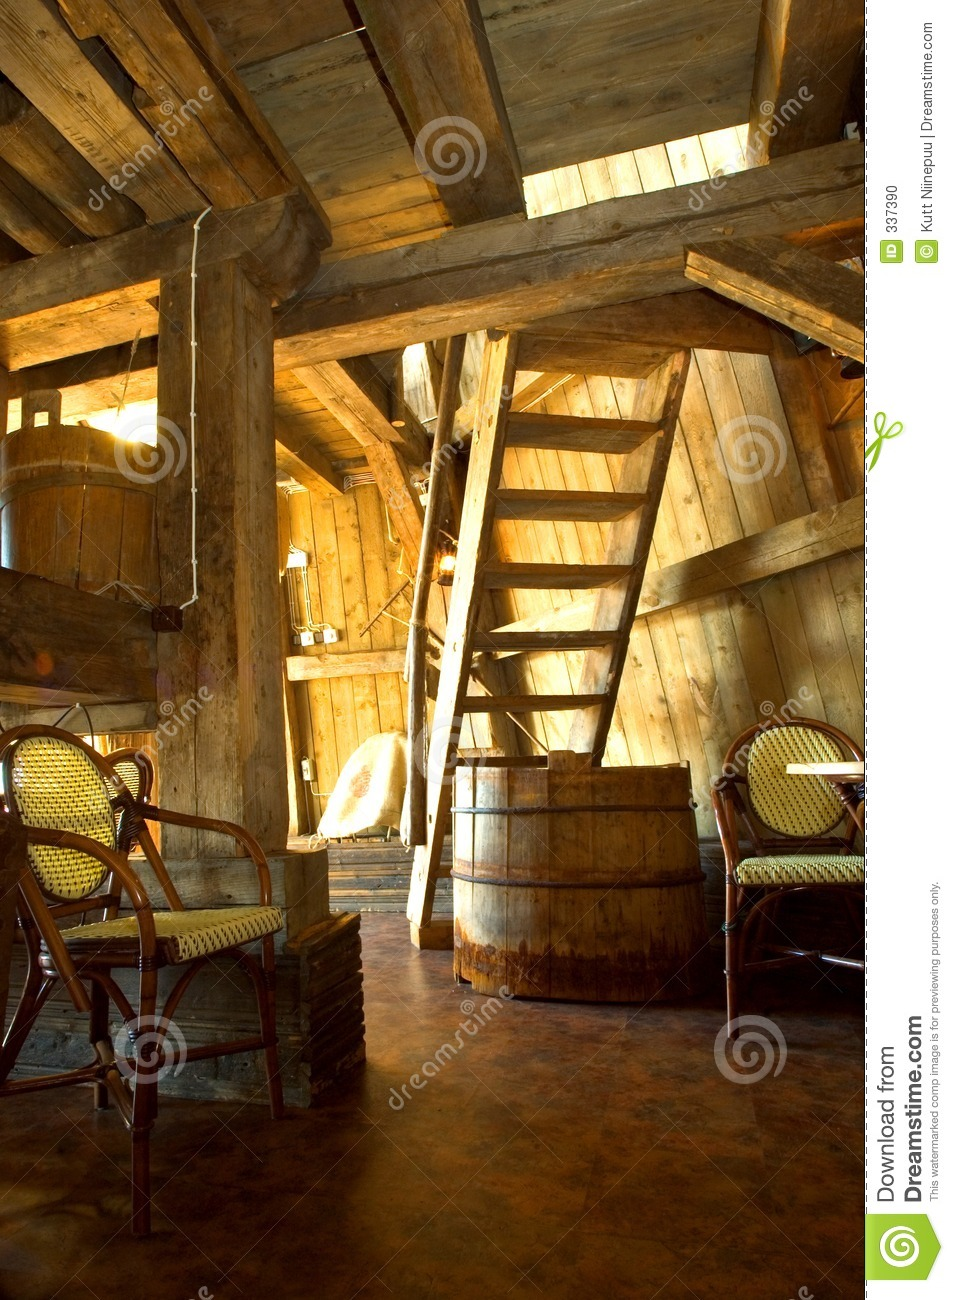 The Interiors Of This Modern Mexican House Open To: Old Windmill Interior Stock Photo. Image Of Stairs